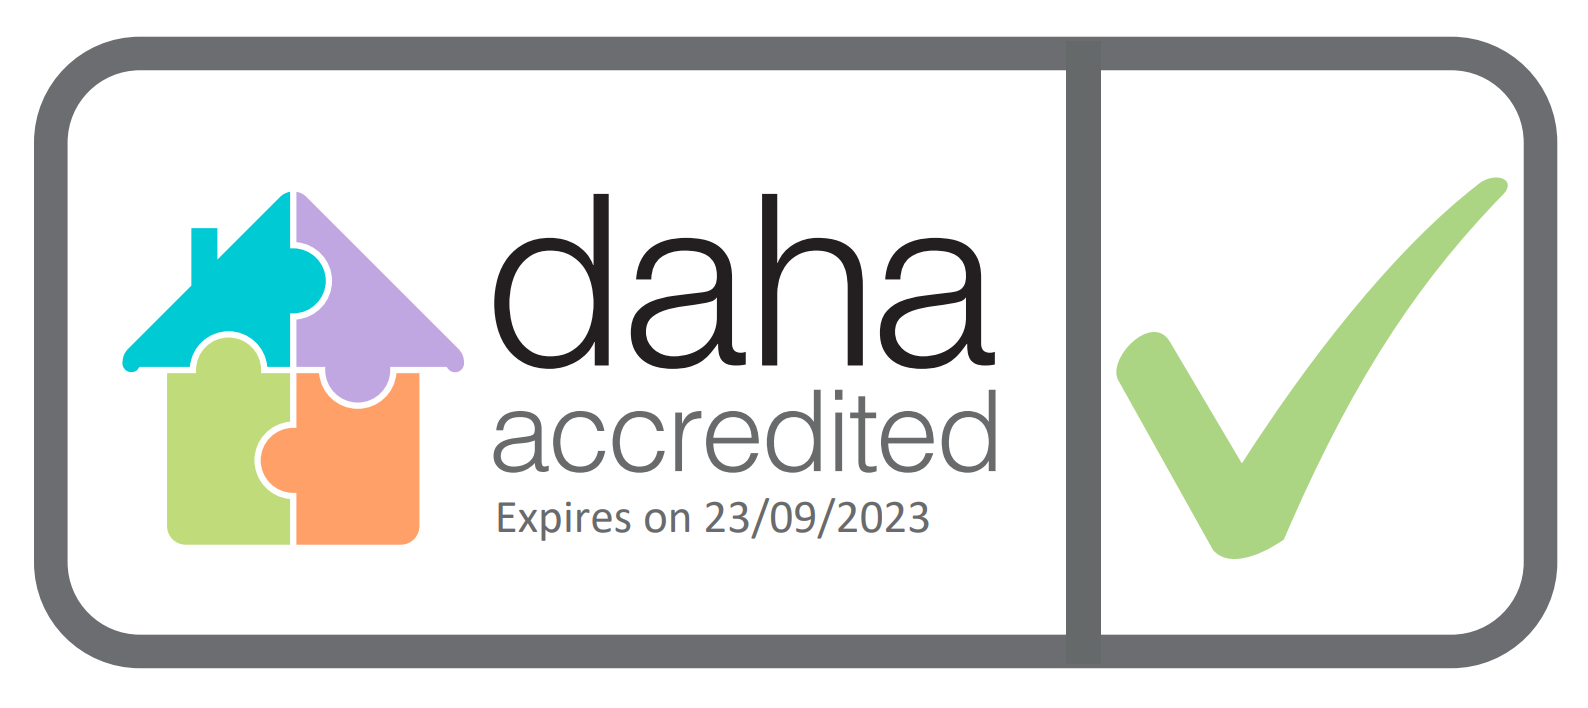 Decorative image displaying our DAHA accredited badge (accreditation expires 23.09.2023).